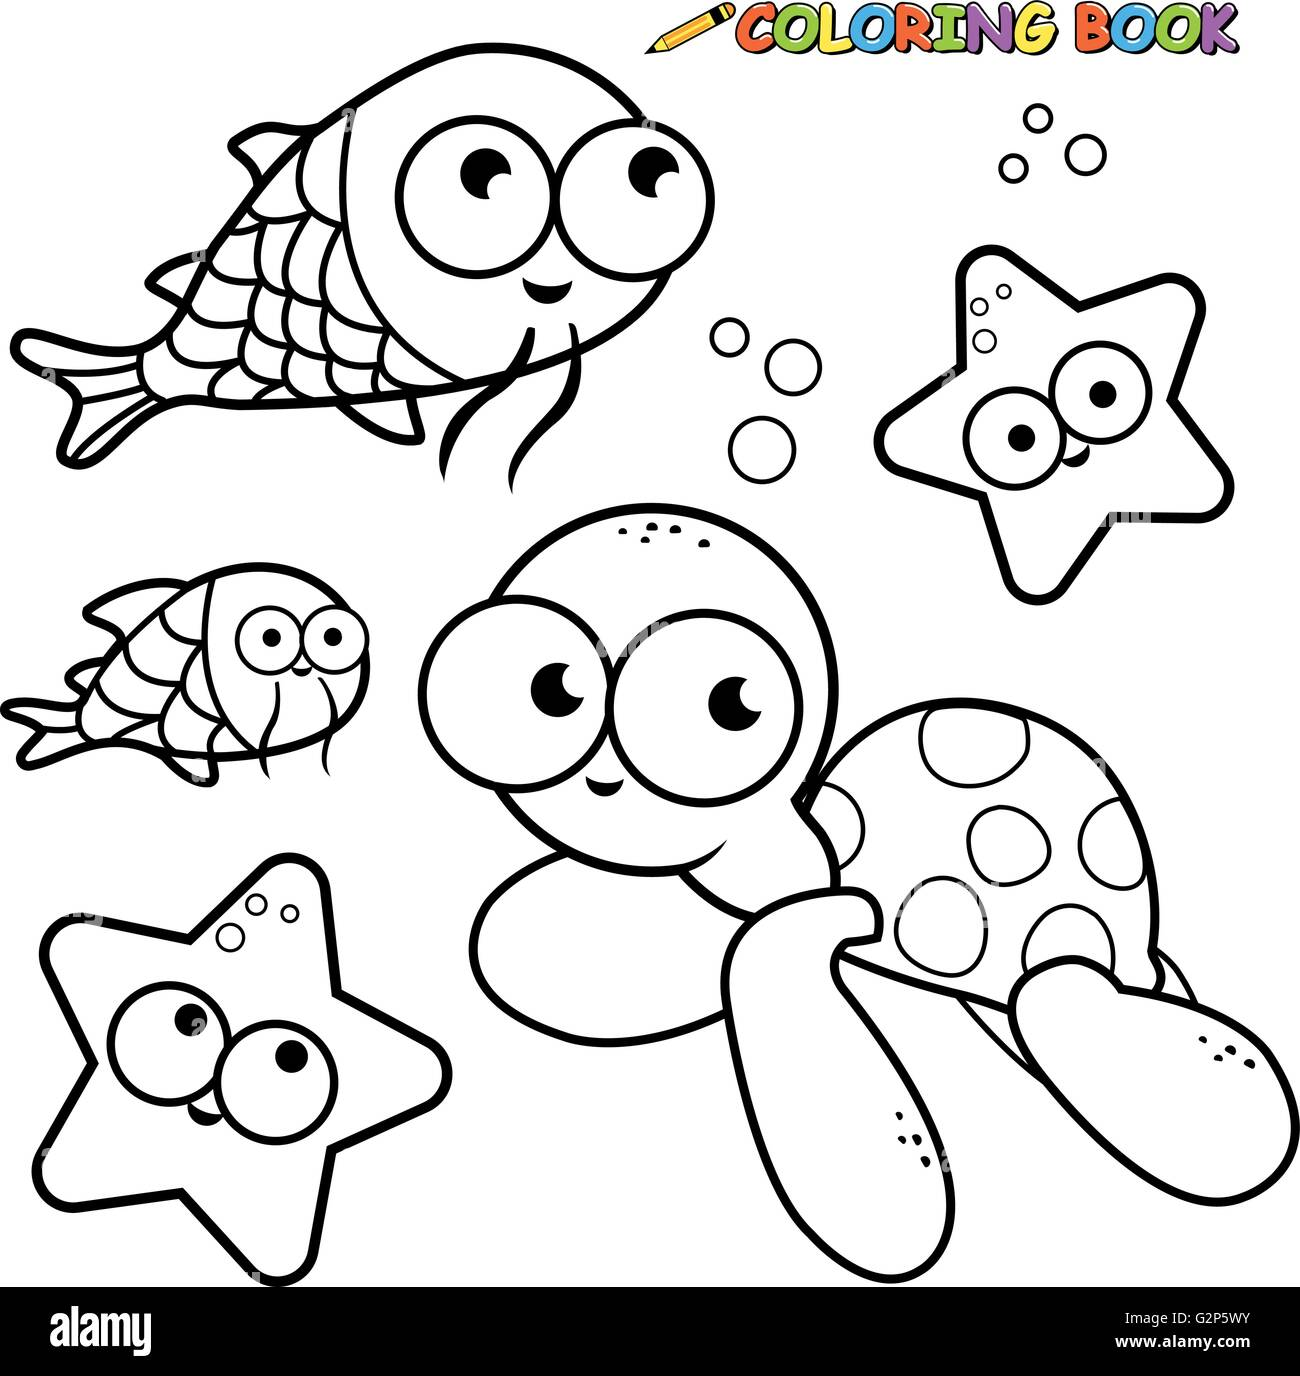 Black and white outline image of sea animals. Coloring book page ...